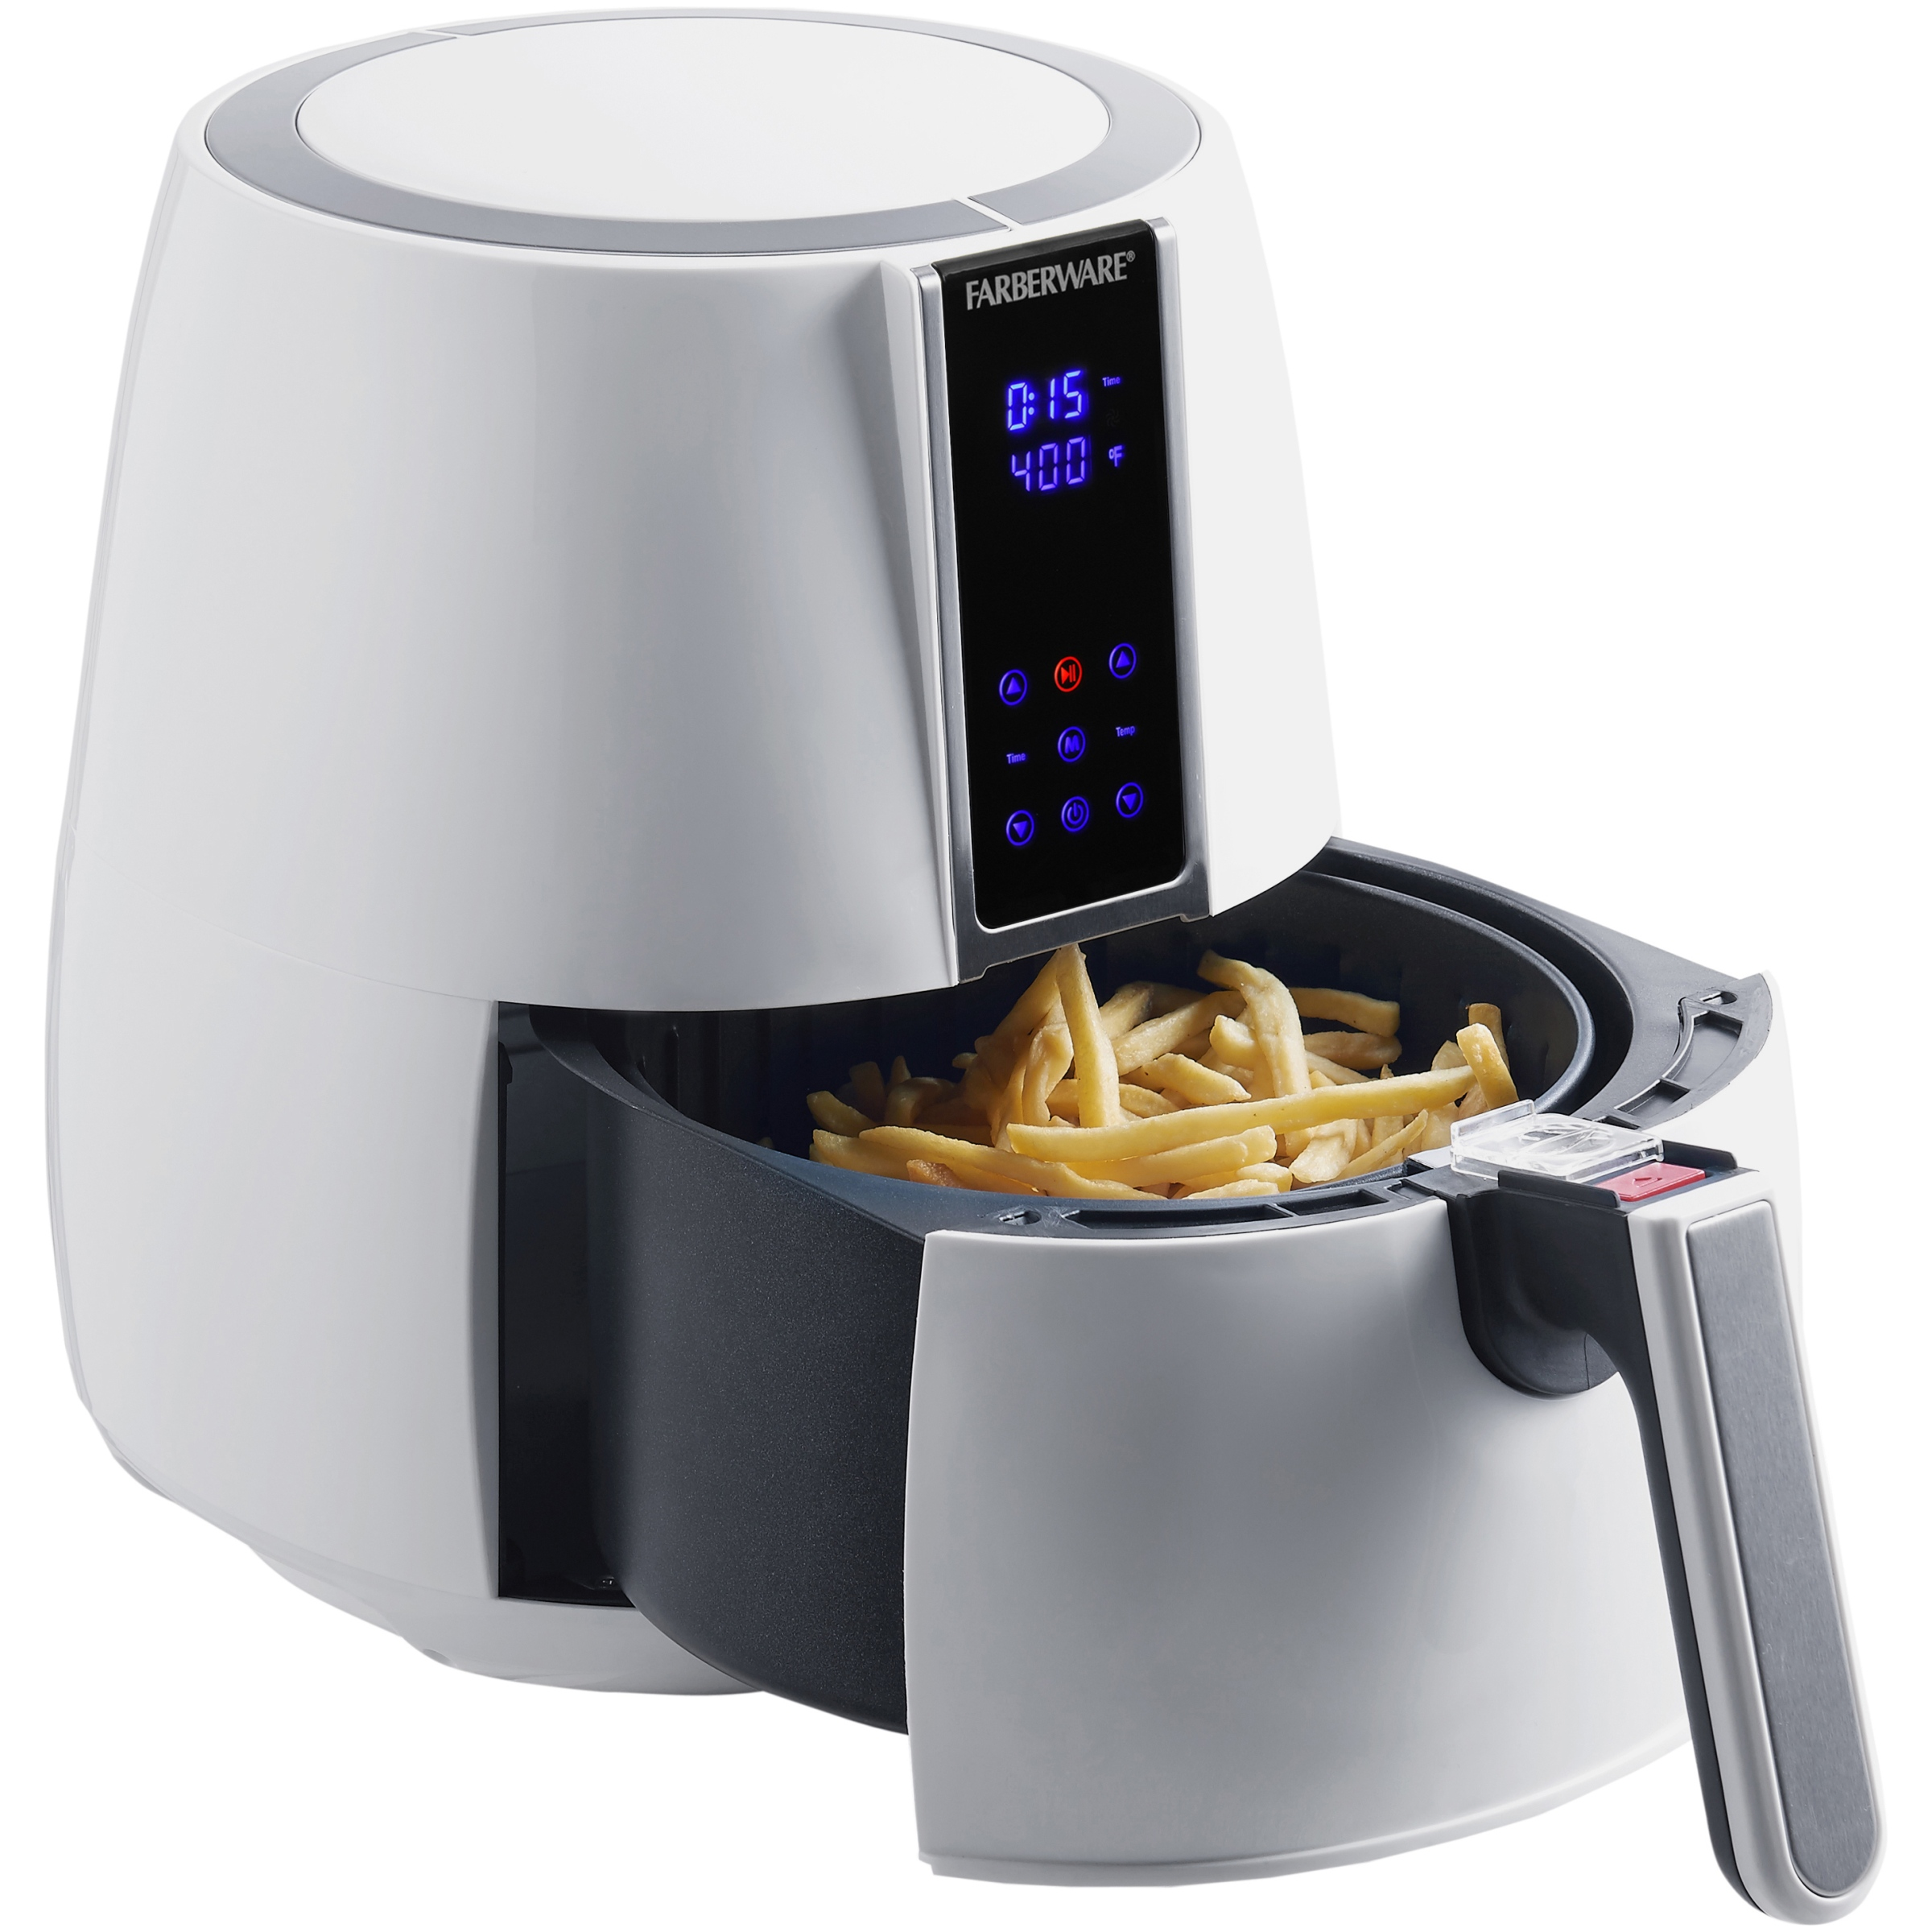 Farberware 3.2-Quart Digital Oil-Less Fryer